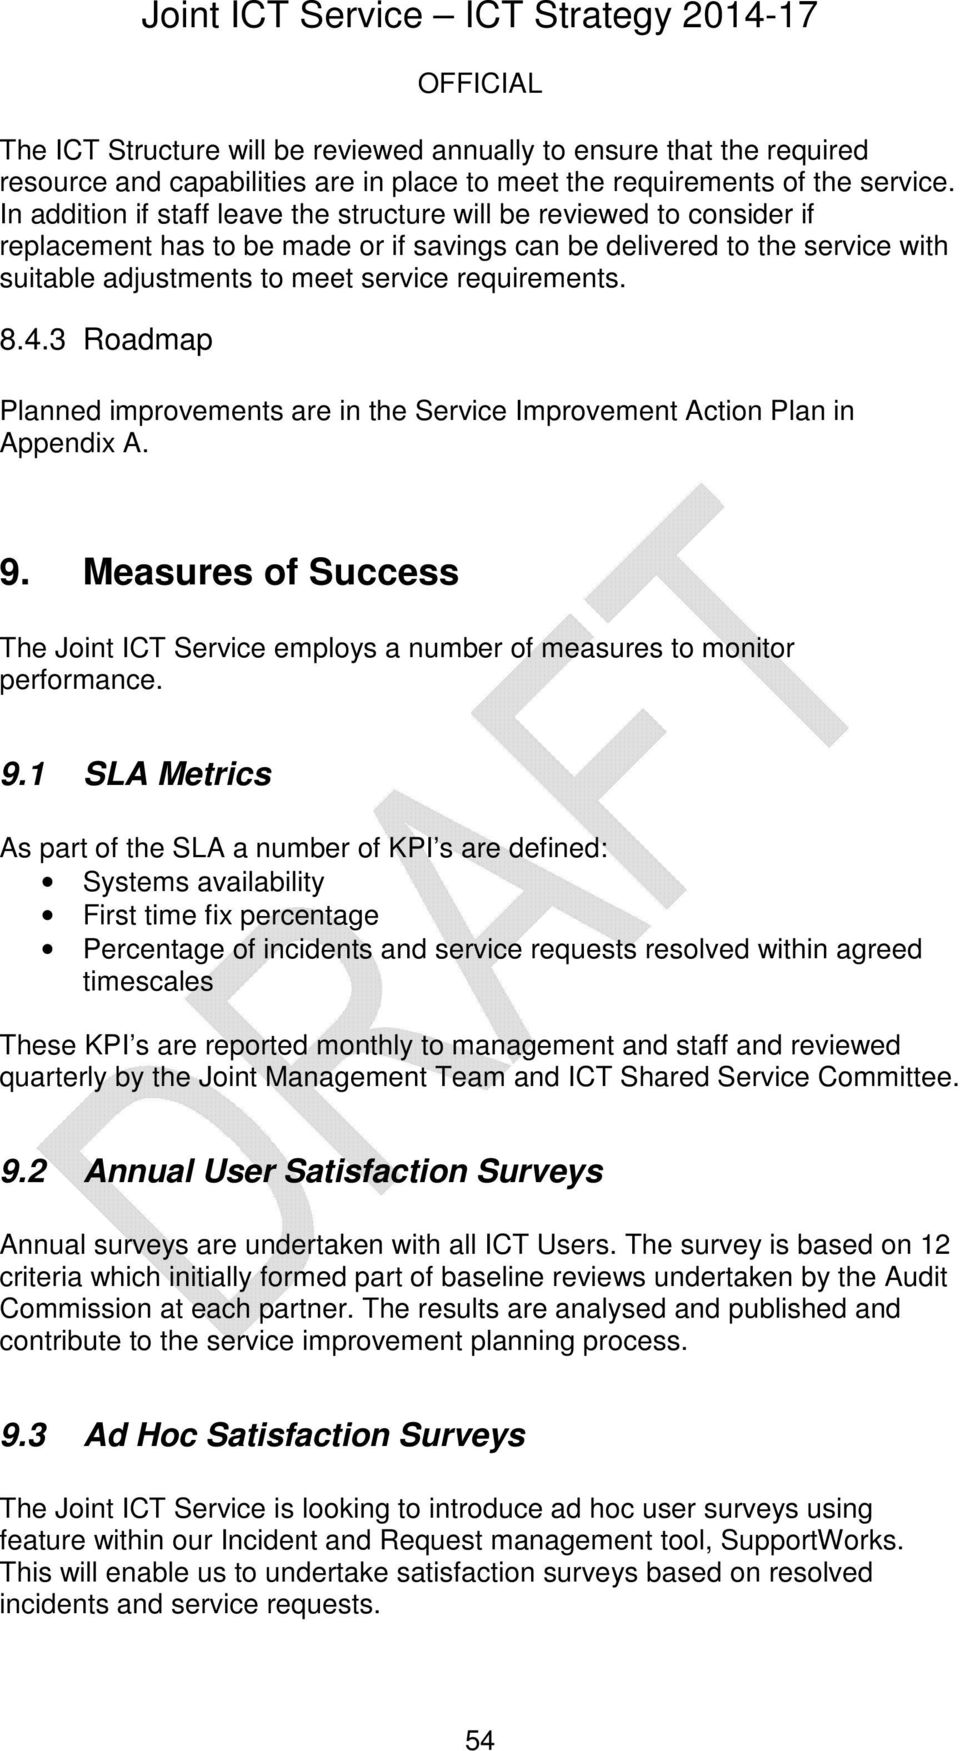 requirements. 8.4.3 Roadmap Planned improvements are in the Service Improvement Action Plan in Appendix A. 9.